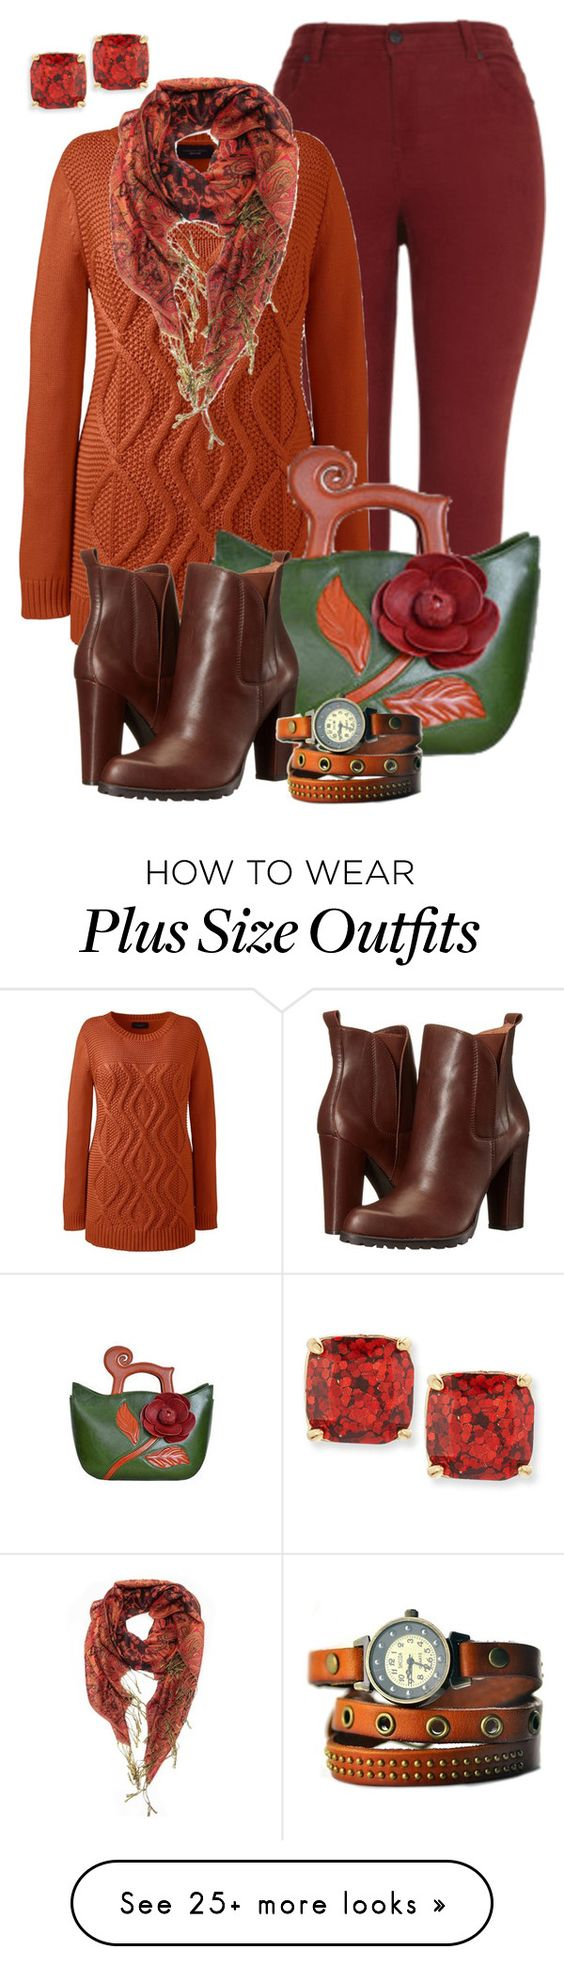 """Fall Outfit -- #Plus Size"" by kimberlyn303 on Polyvore featuring Lands' End, Kate Spade, BCBGeneration and plus size clothing"